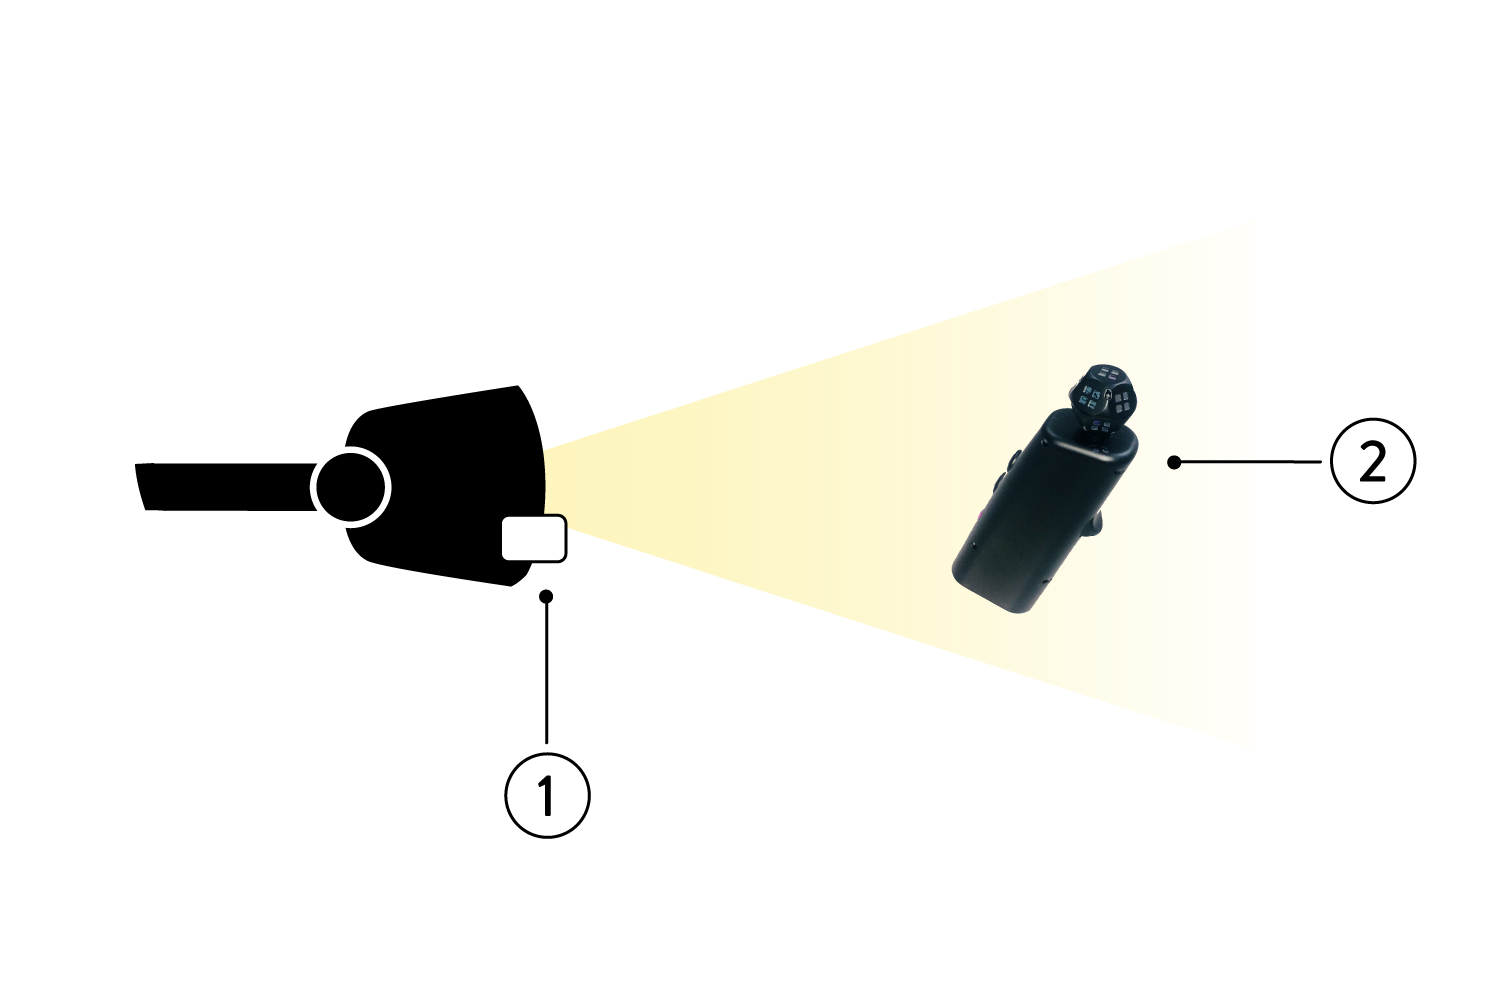 How Pol Works? - 1. IR light & Polarizer Film implemented on VR headset2. Light Sensor Module Controller & AlgorithmThe infrared LED and polarizer film embedded on the headset will emit the polarized light. Then the polarizer film and light sensor on controller will detect the polarized light to calculate the location of the controller.